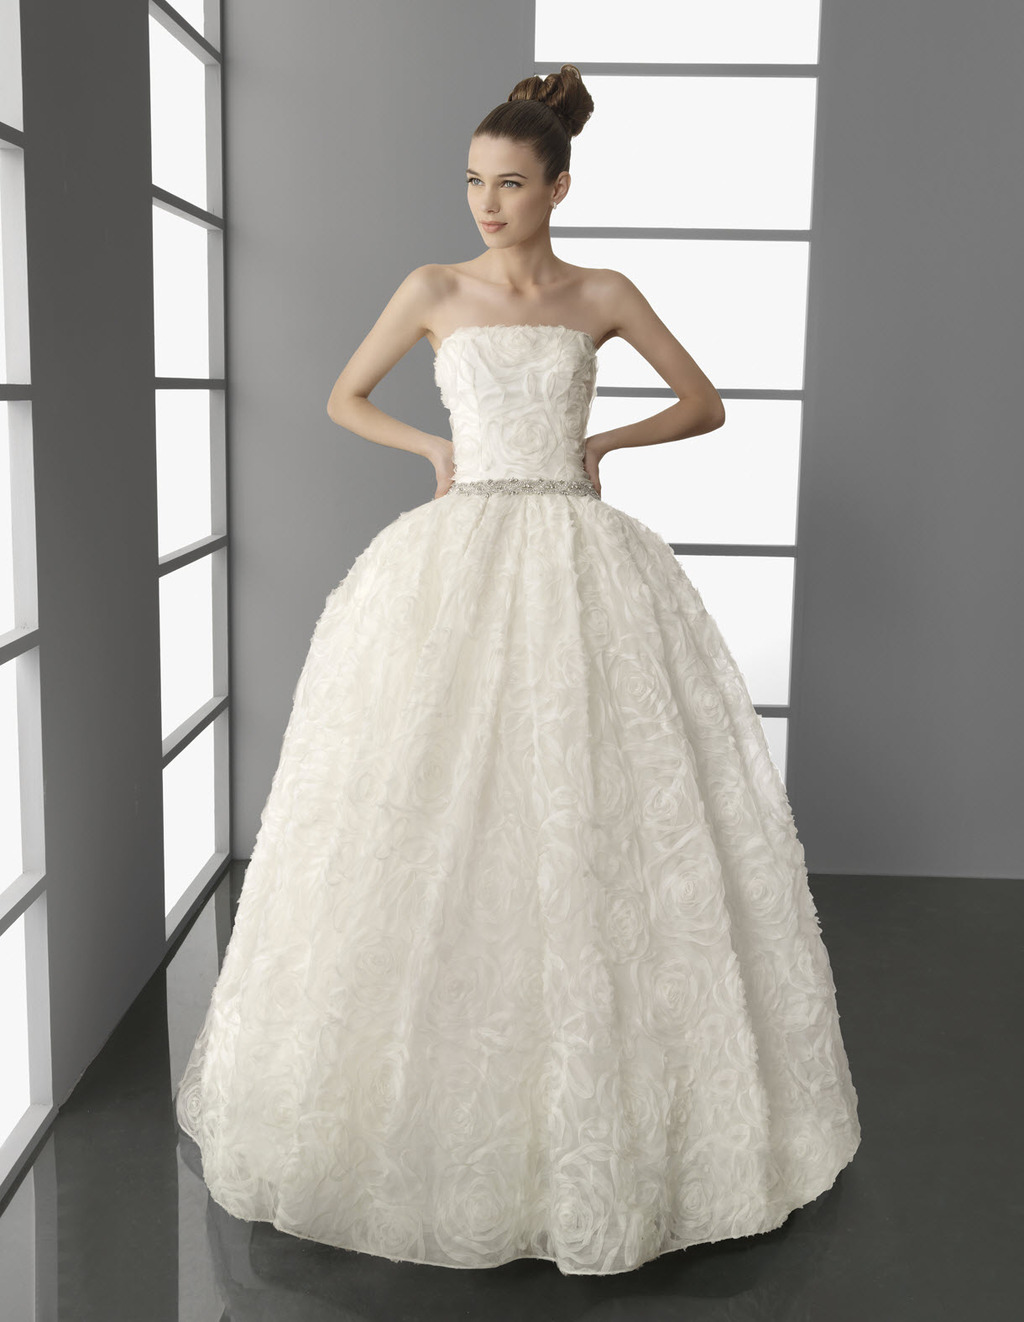 Elegant ivory strapless wedding dress with princess silhouette and ...